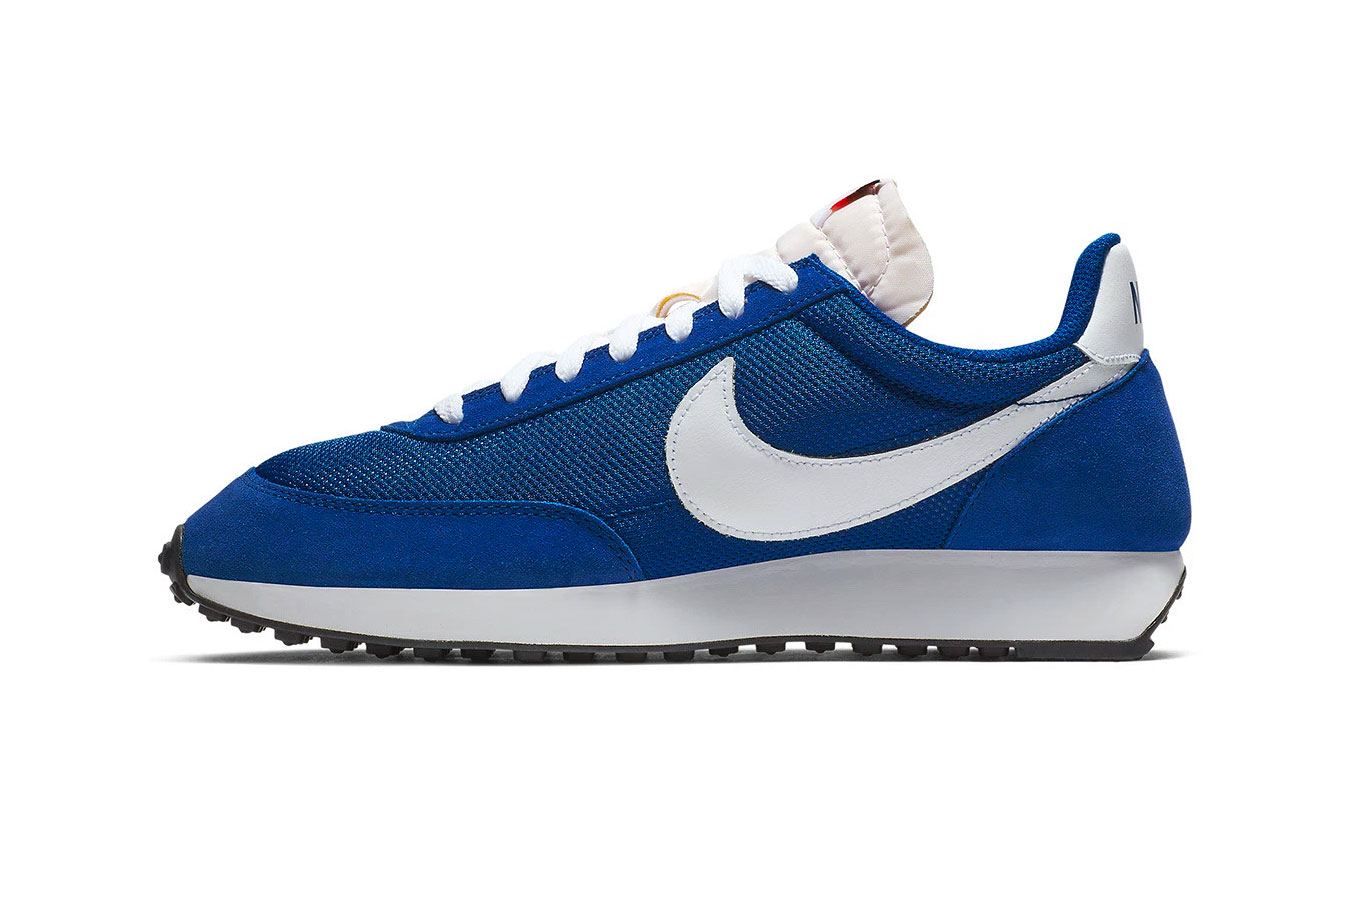 outlet store 95fa9 28994 Nike Air Tailwind '79 OG Royal Blue